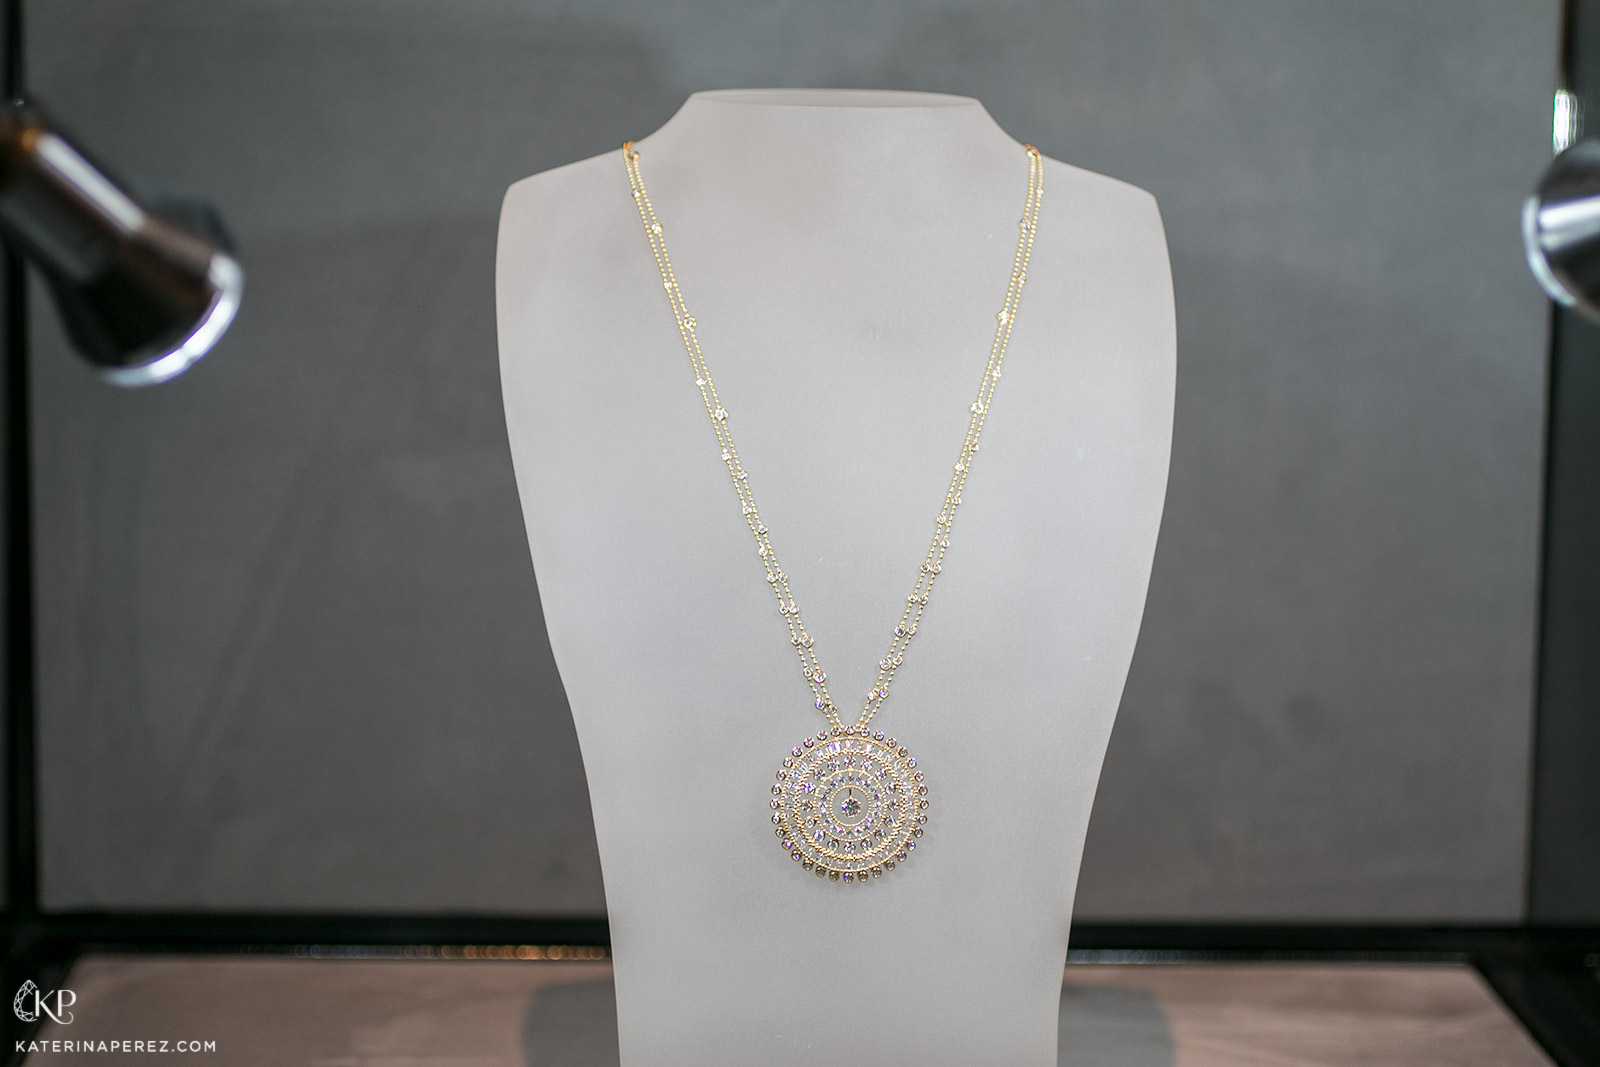 Harakh 'Sunlight' necklace with diamonds in yellow gold